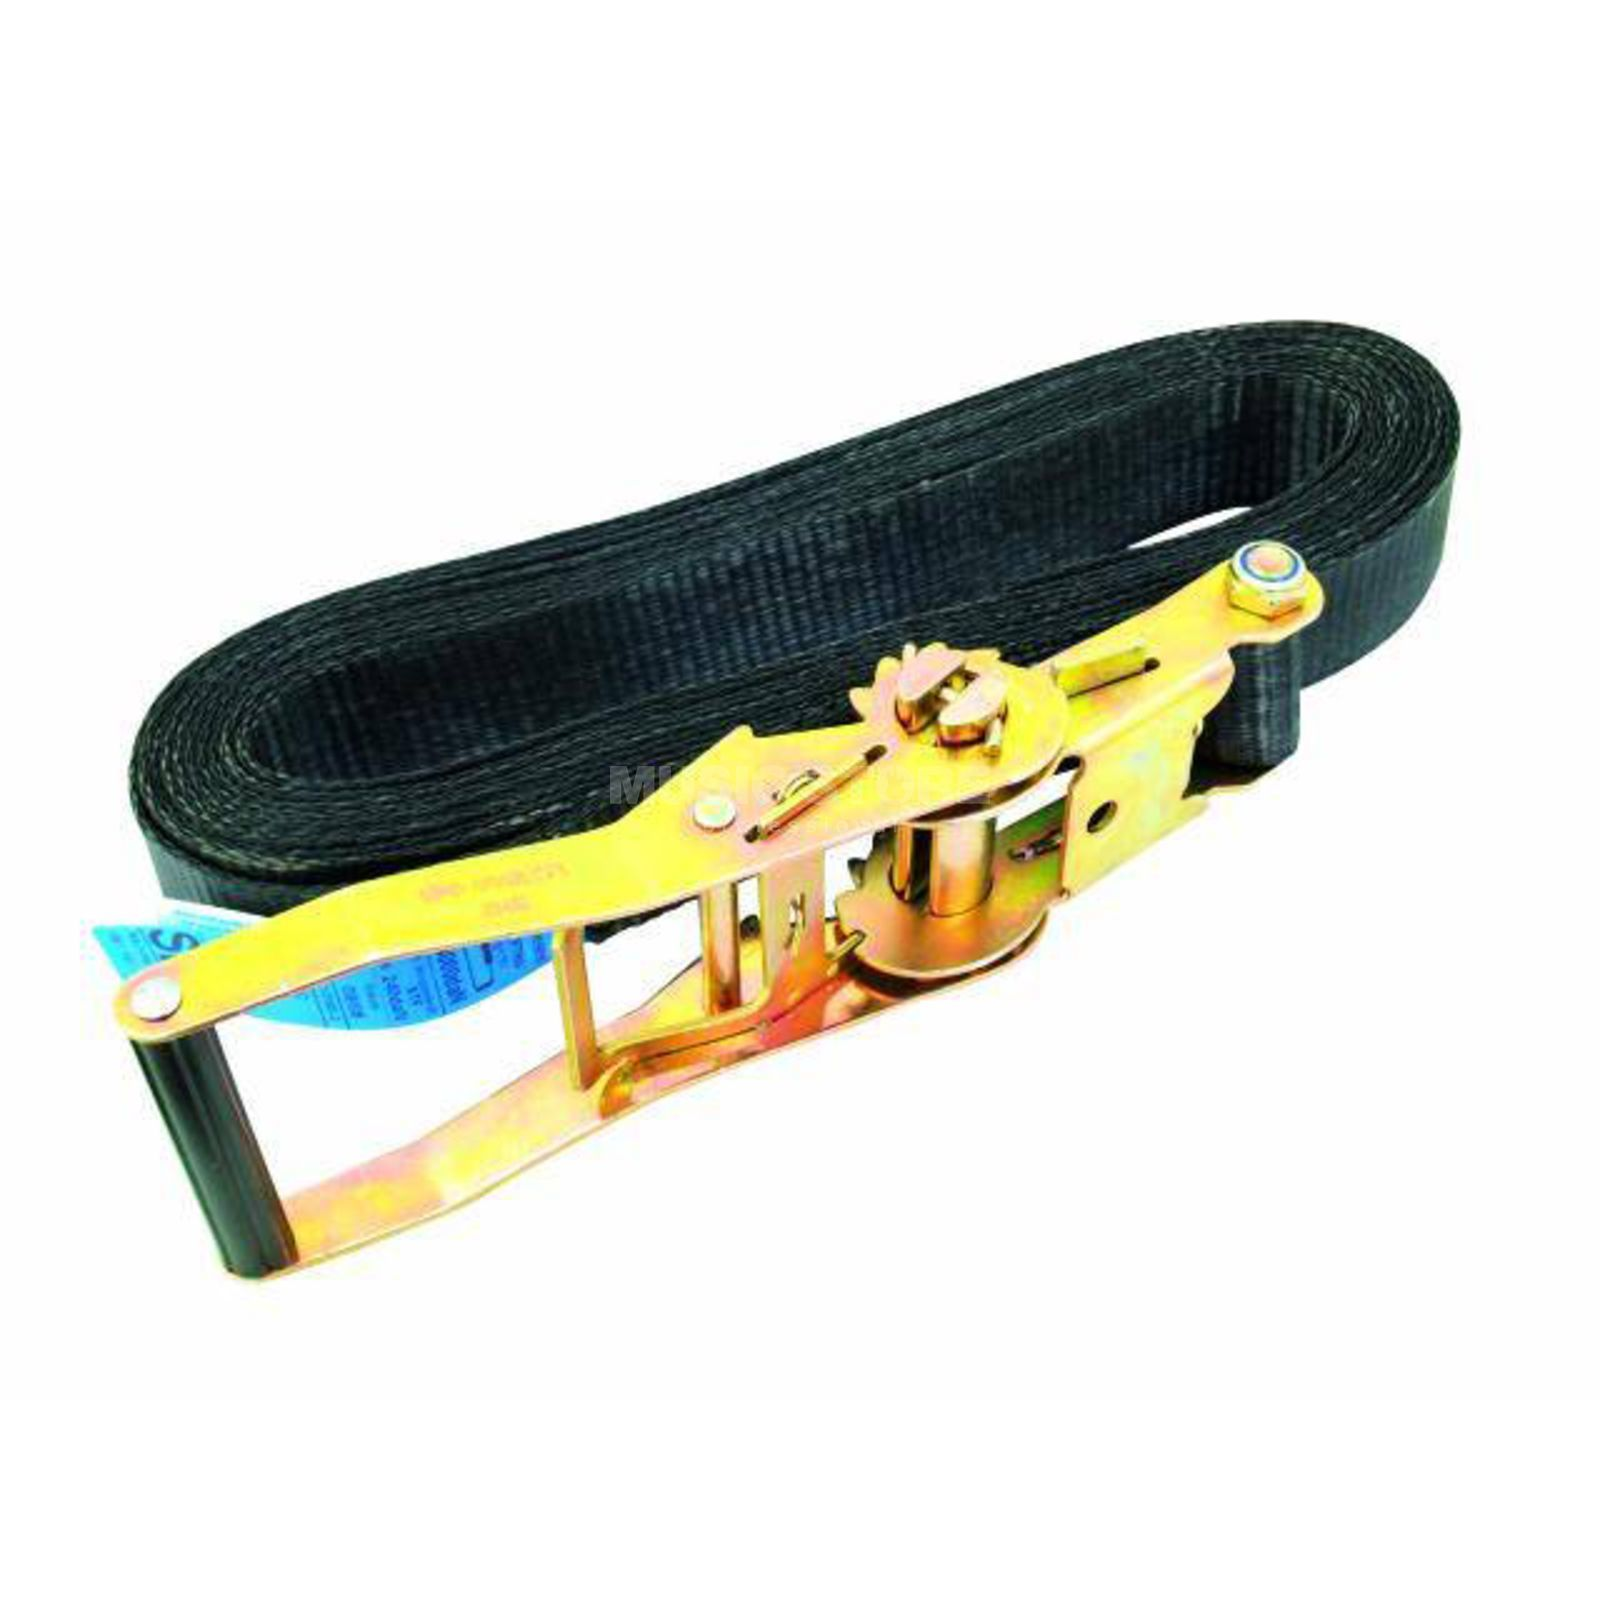 Eurolite S800 Lashing Strap with Ratchet - 8m/50mm Black Produktbillede